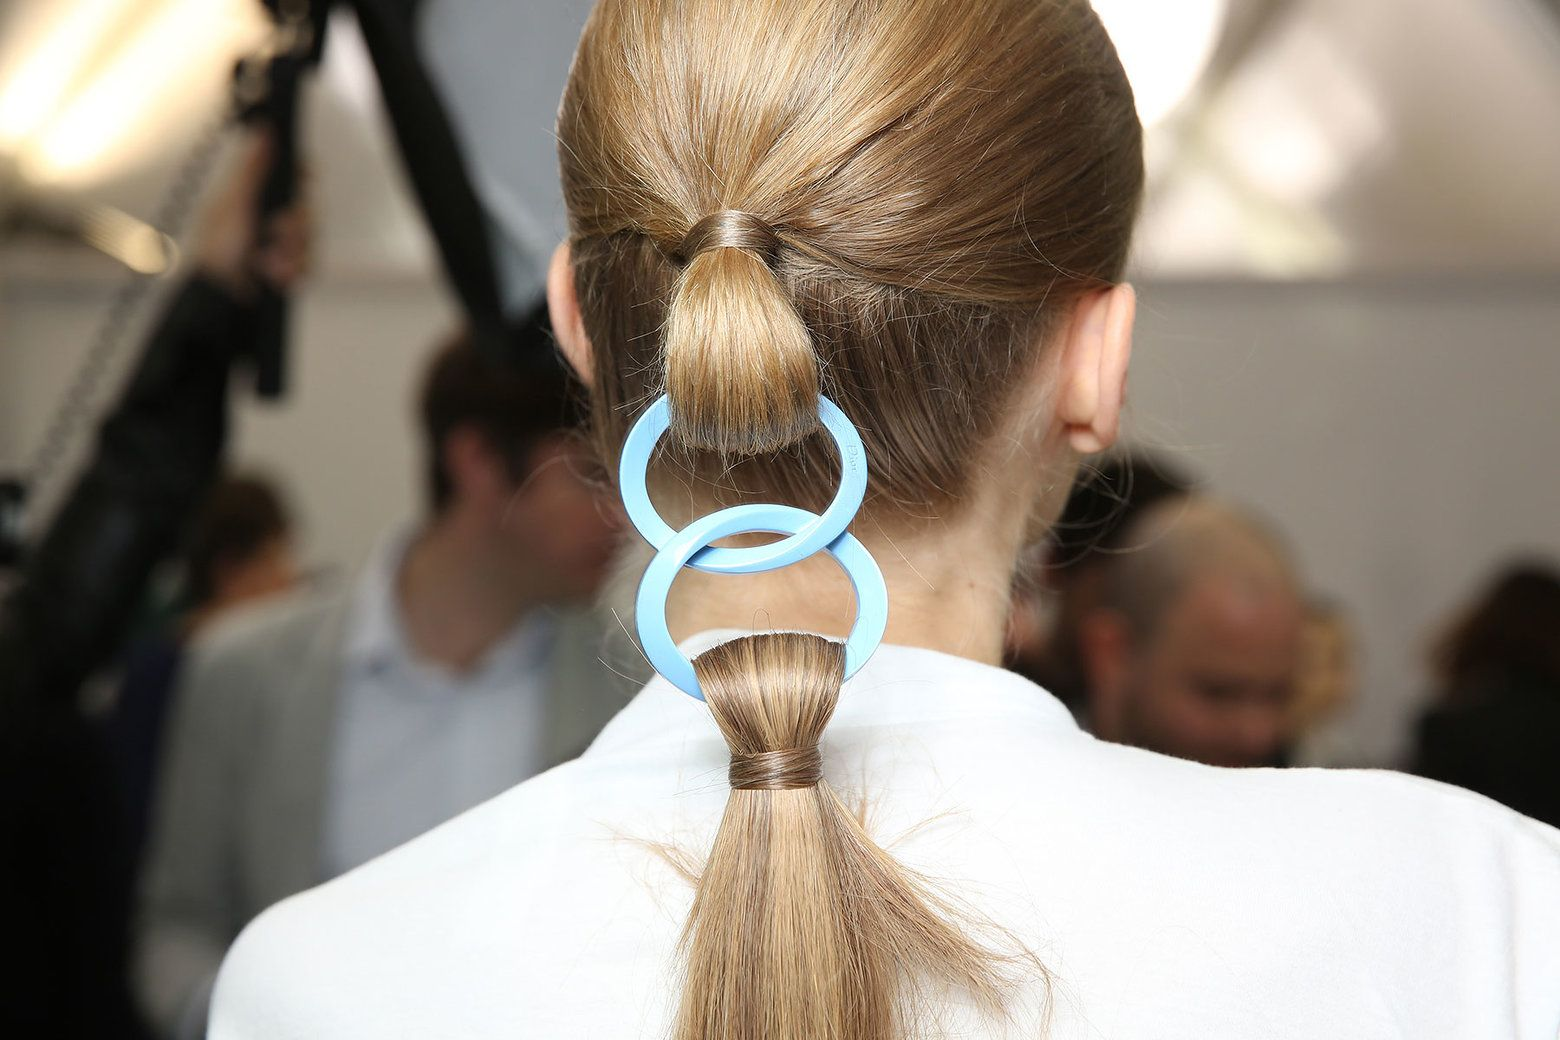 The Posh Ponytail Colorful Hair Ornaments, Extreme